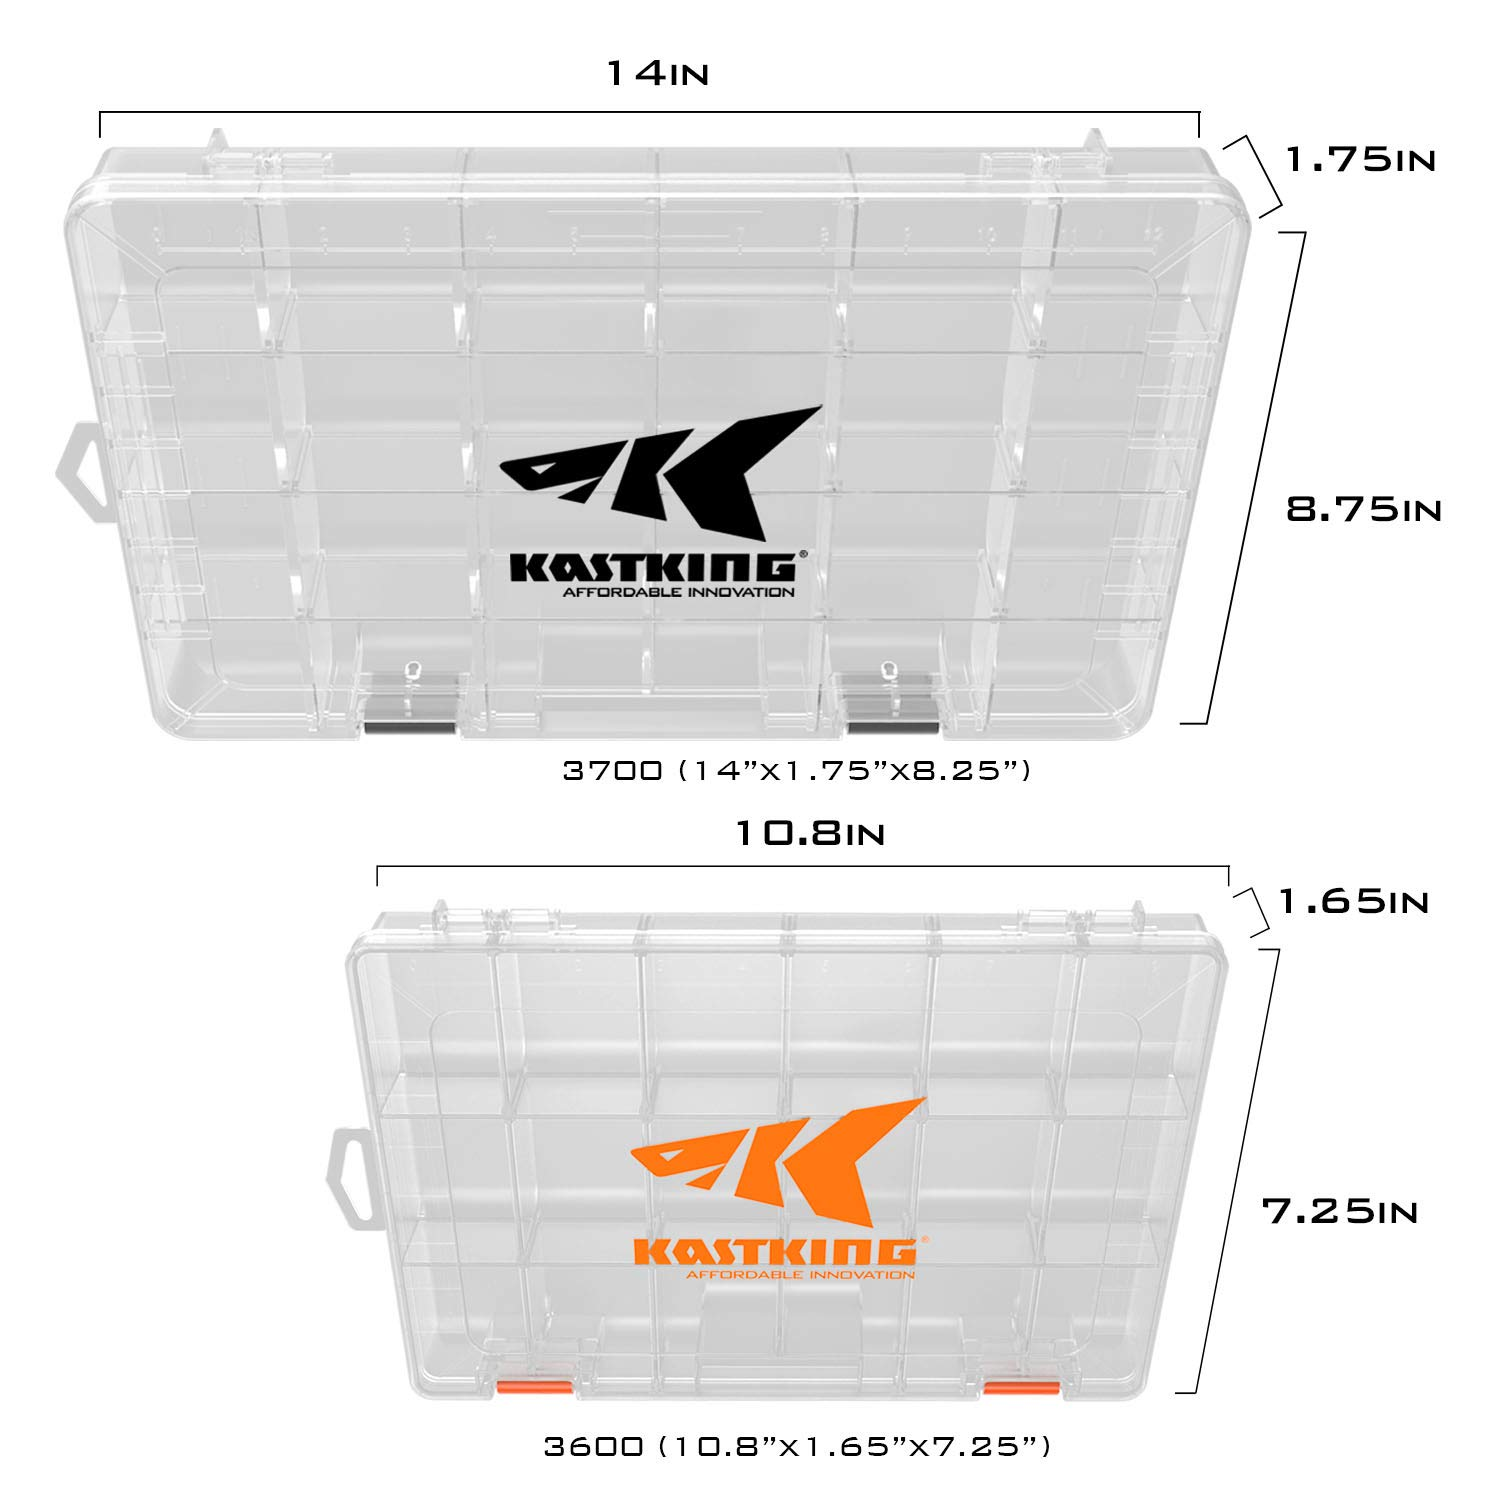 2 Packs //4 Packs Tackle Trays Plastic Storage Organizer Box with Removable Dividers- Fishing Tackle Storage Parts Box Tool Box KastKing Tackle Boxes Box Organizer